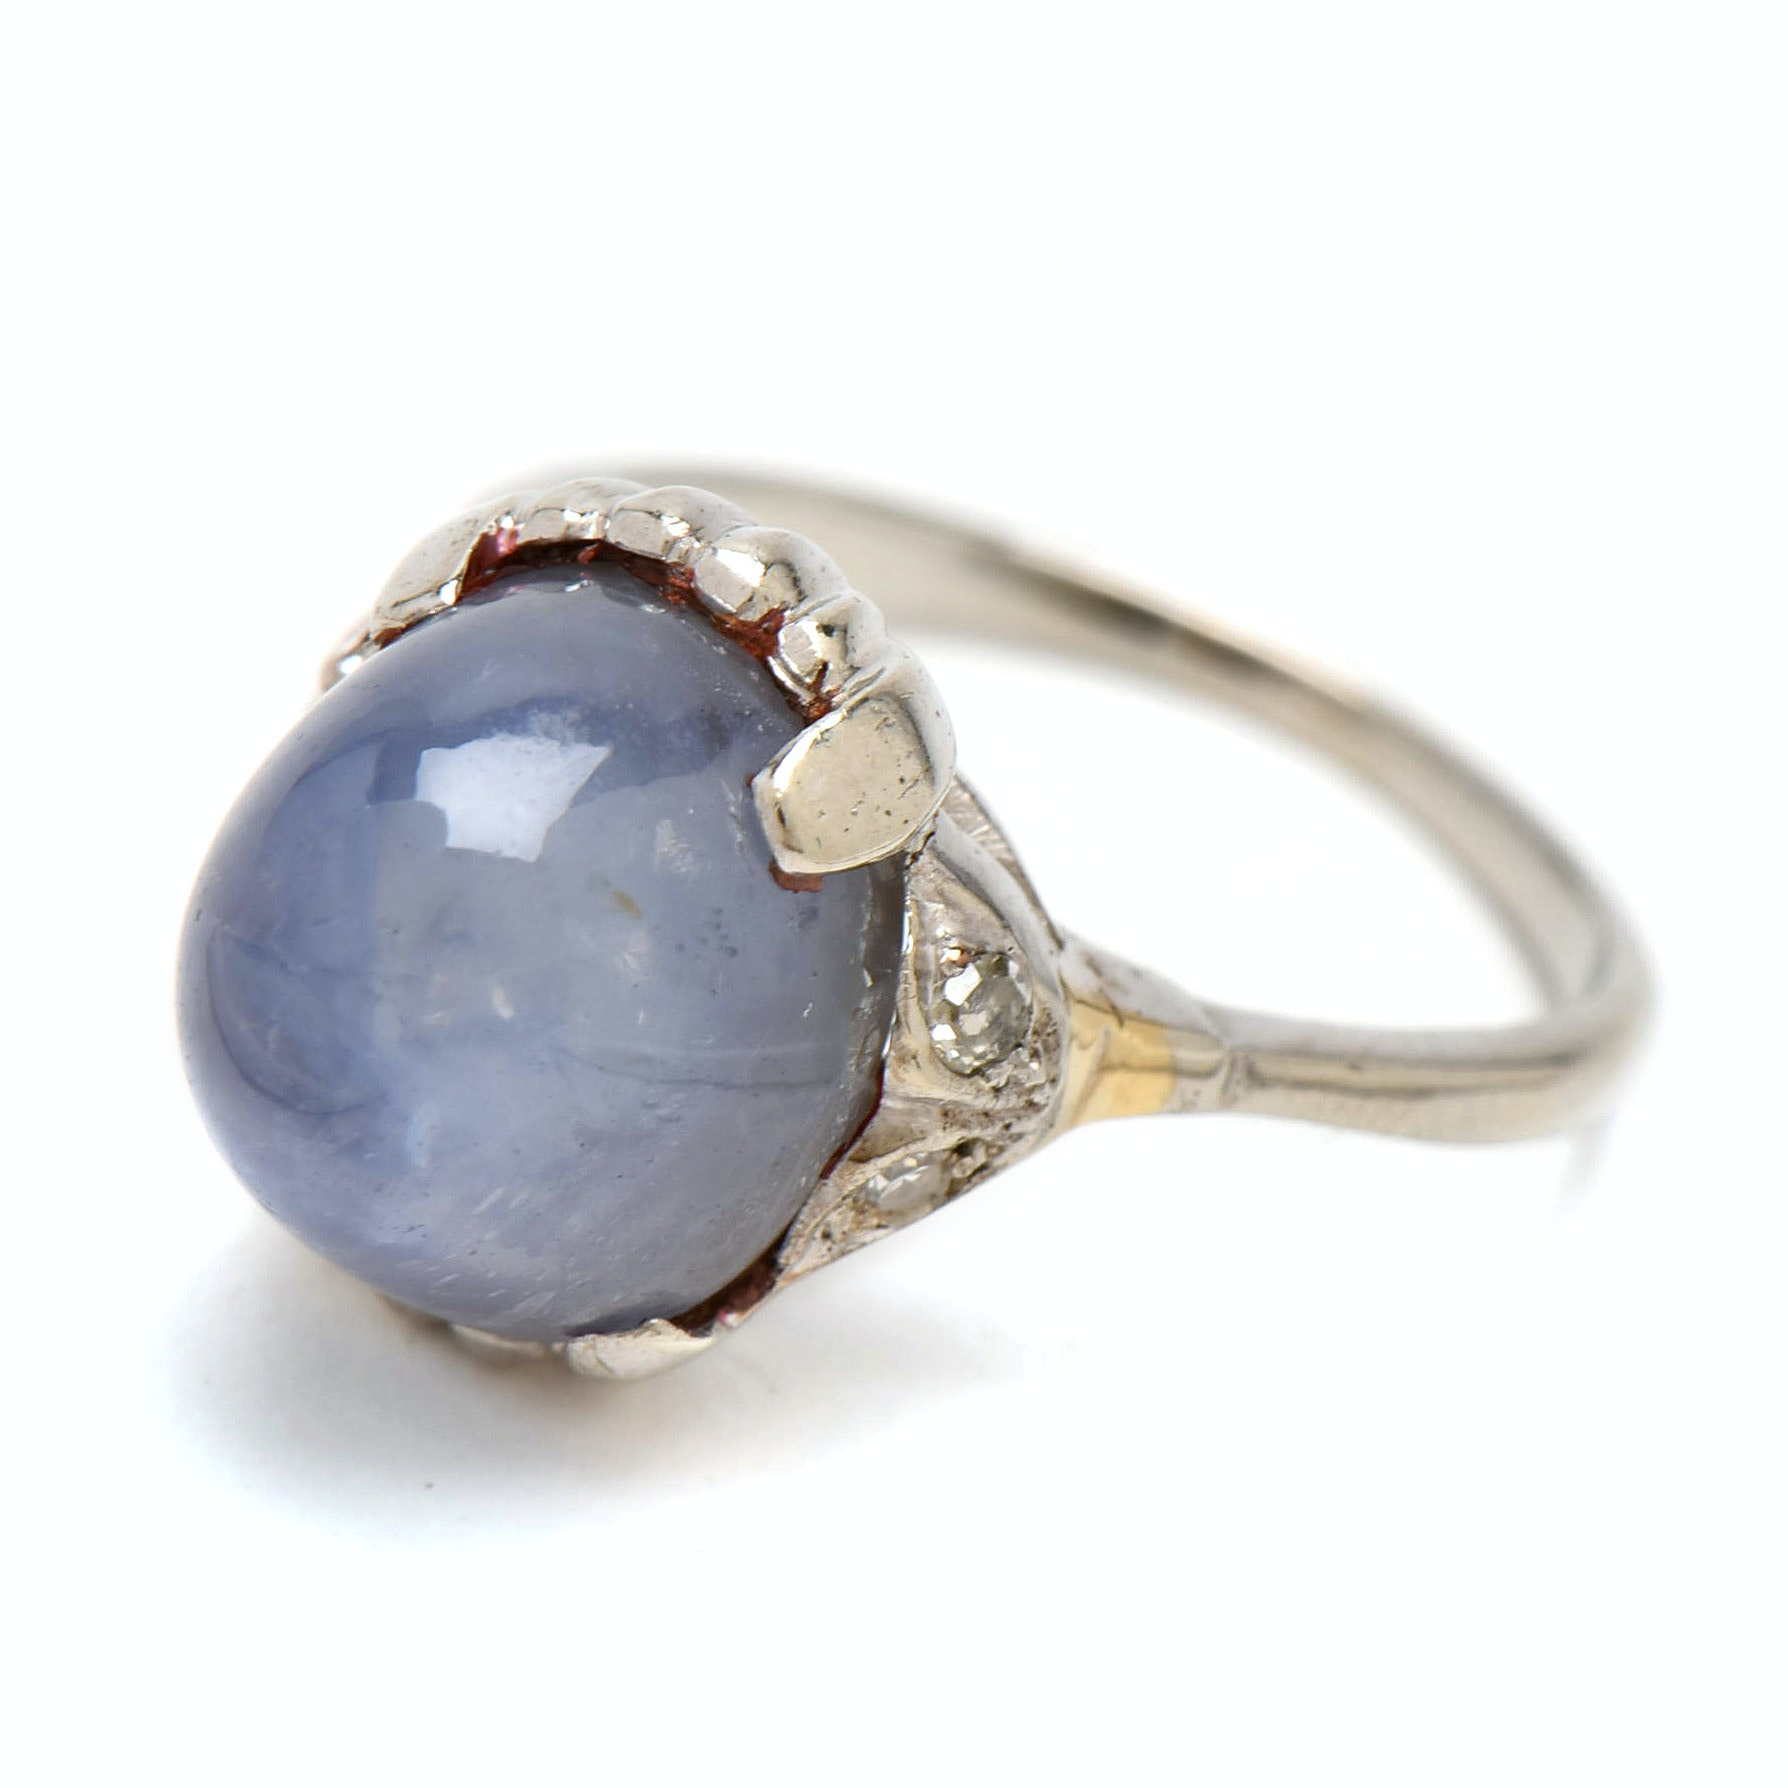 14K White Gold 15.65 CT Blue Star Sapphire and Diamond Ring